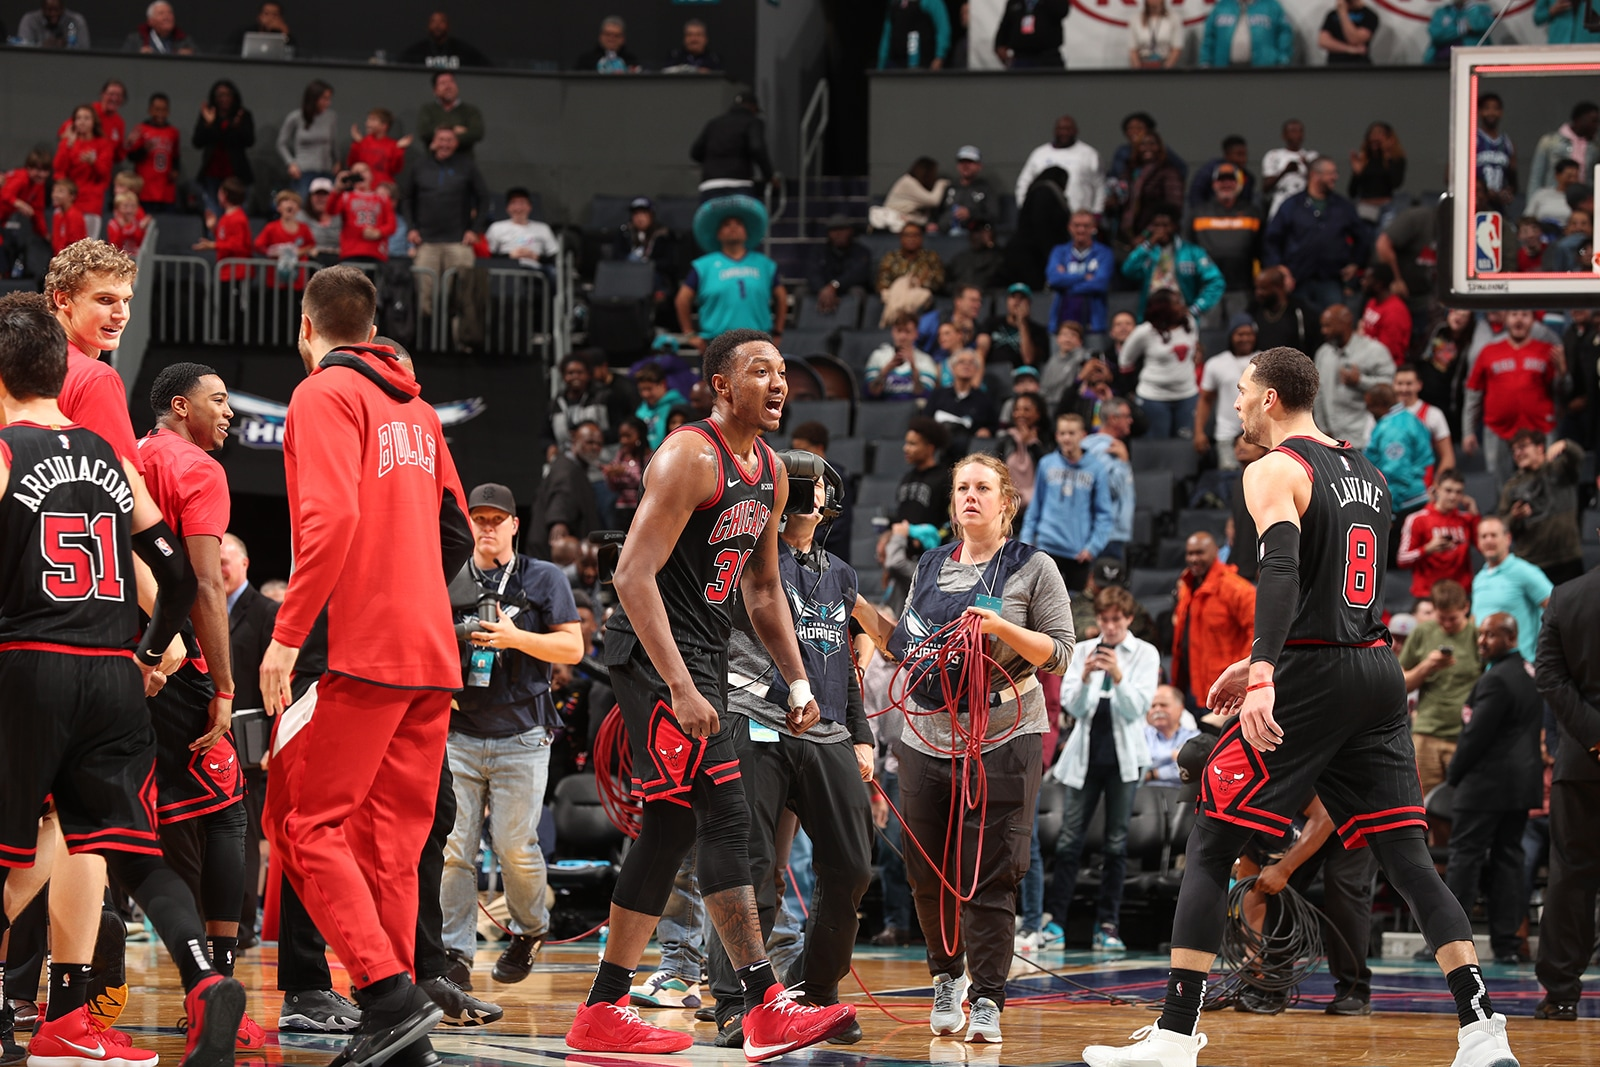 The Bulls celebrate an unlikely win in Charlotte